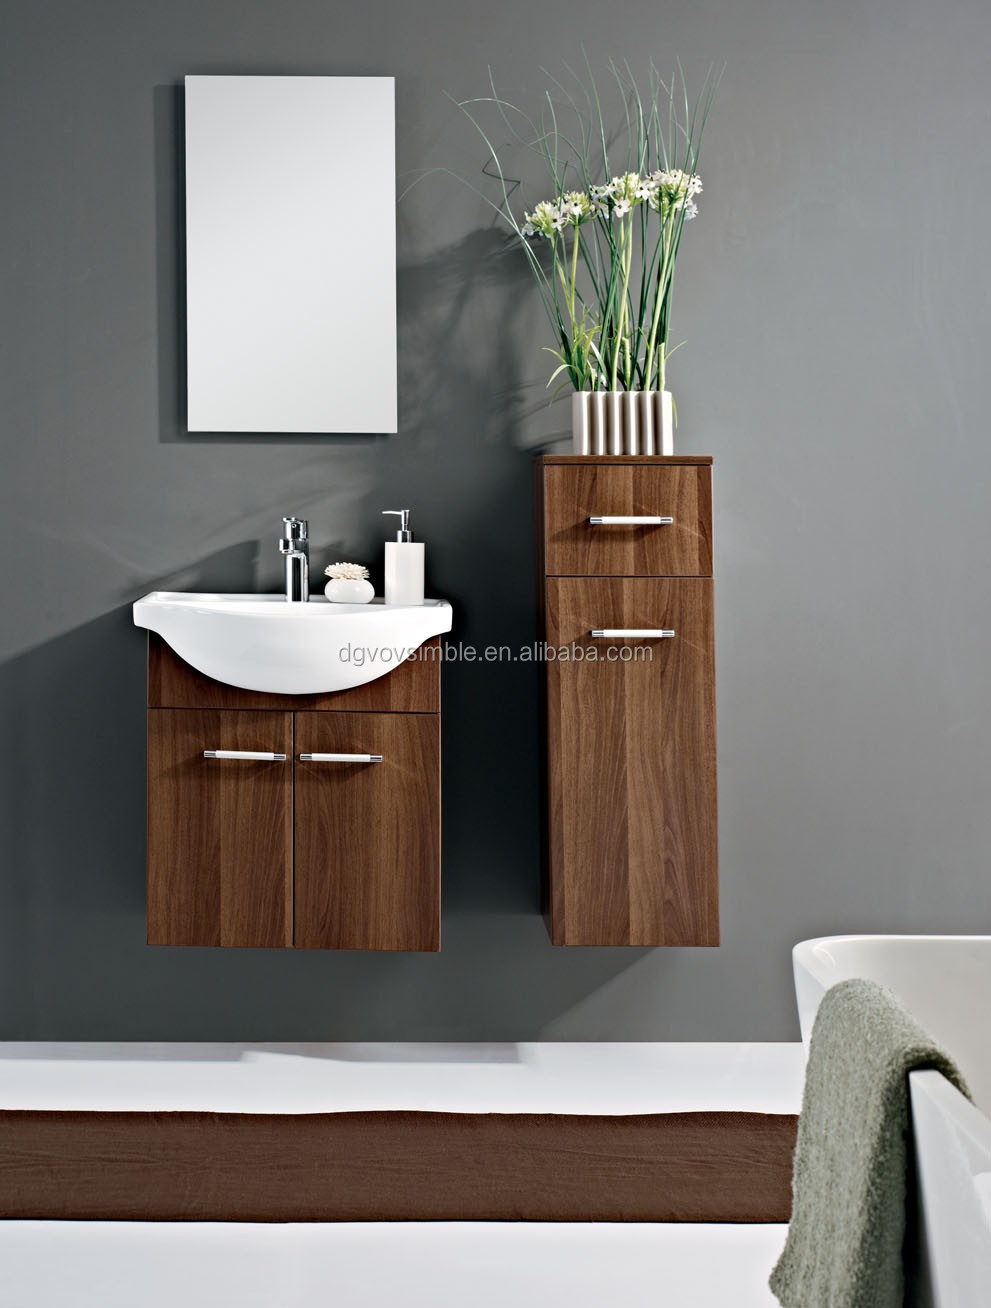 Modern sink furniture - Bath Washing Basin Furniture Modern Mdf Bathroom Sink Cabinet Bathroom Cabinet Mirror